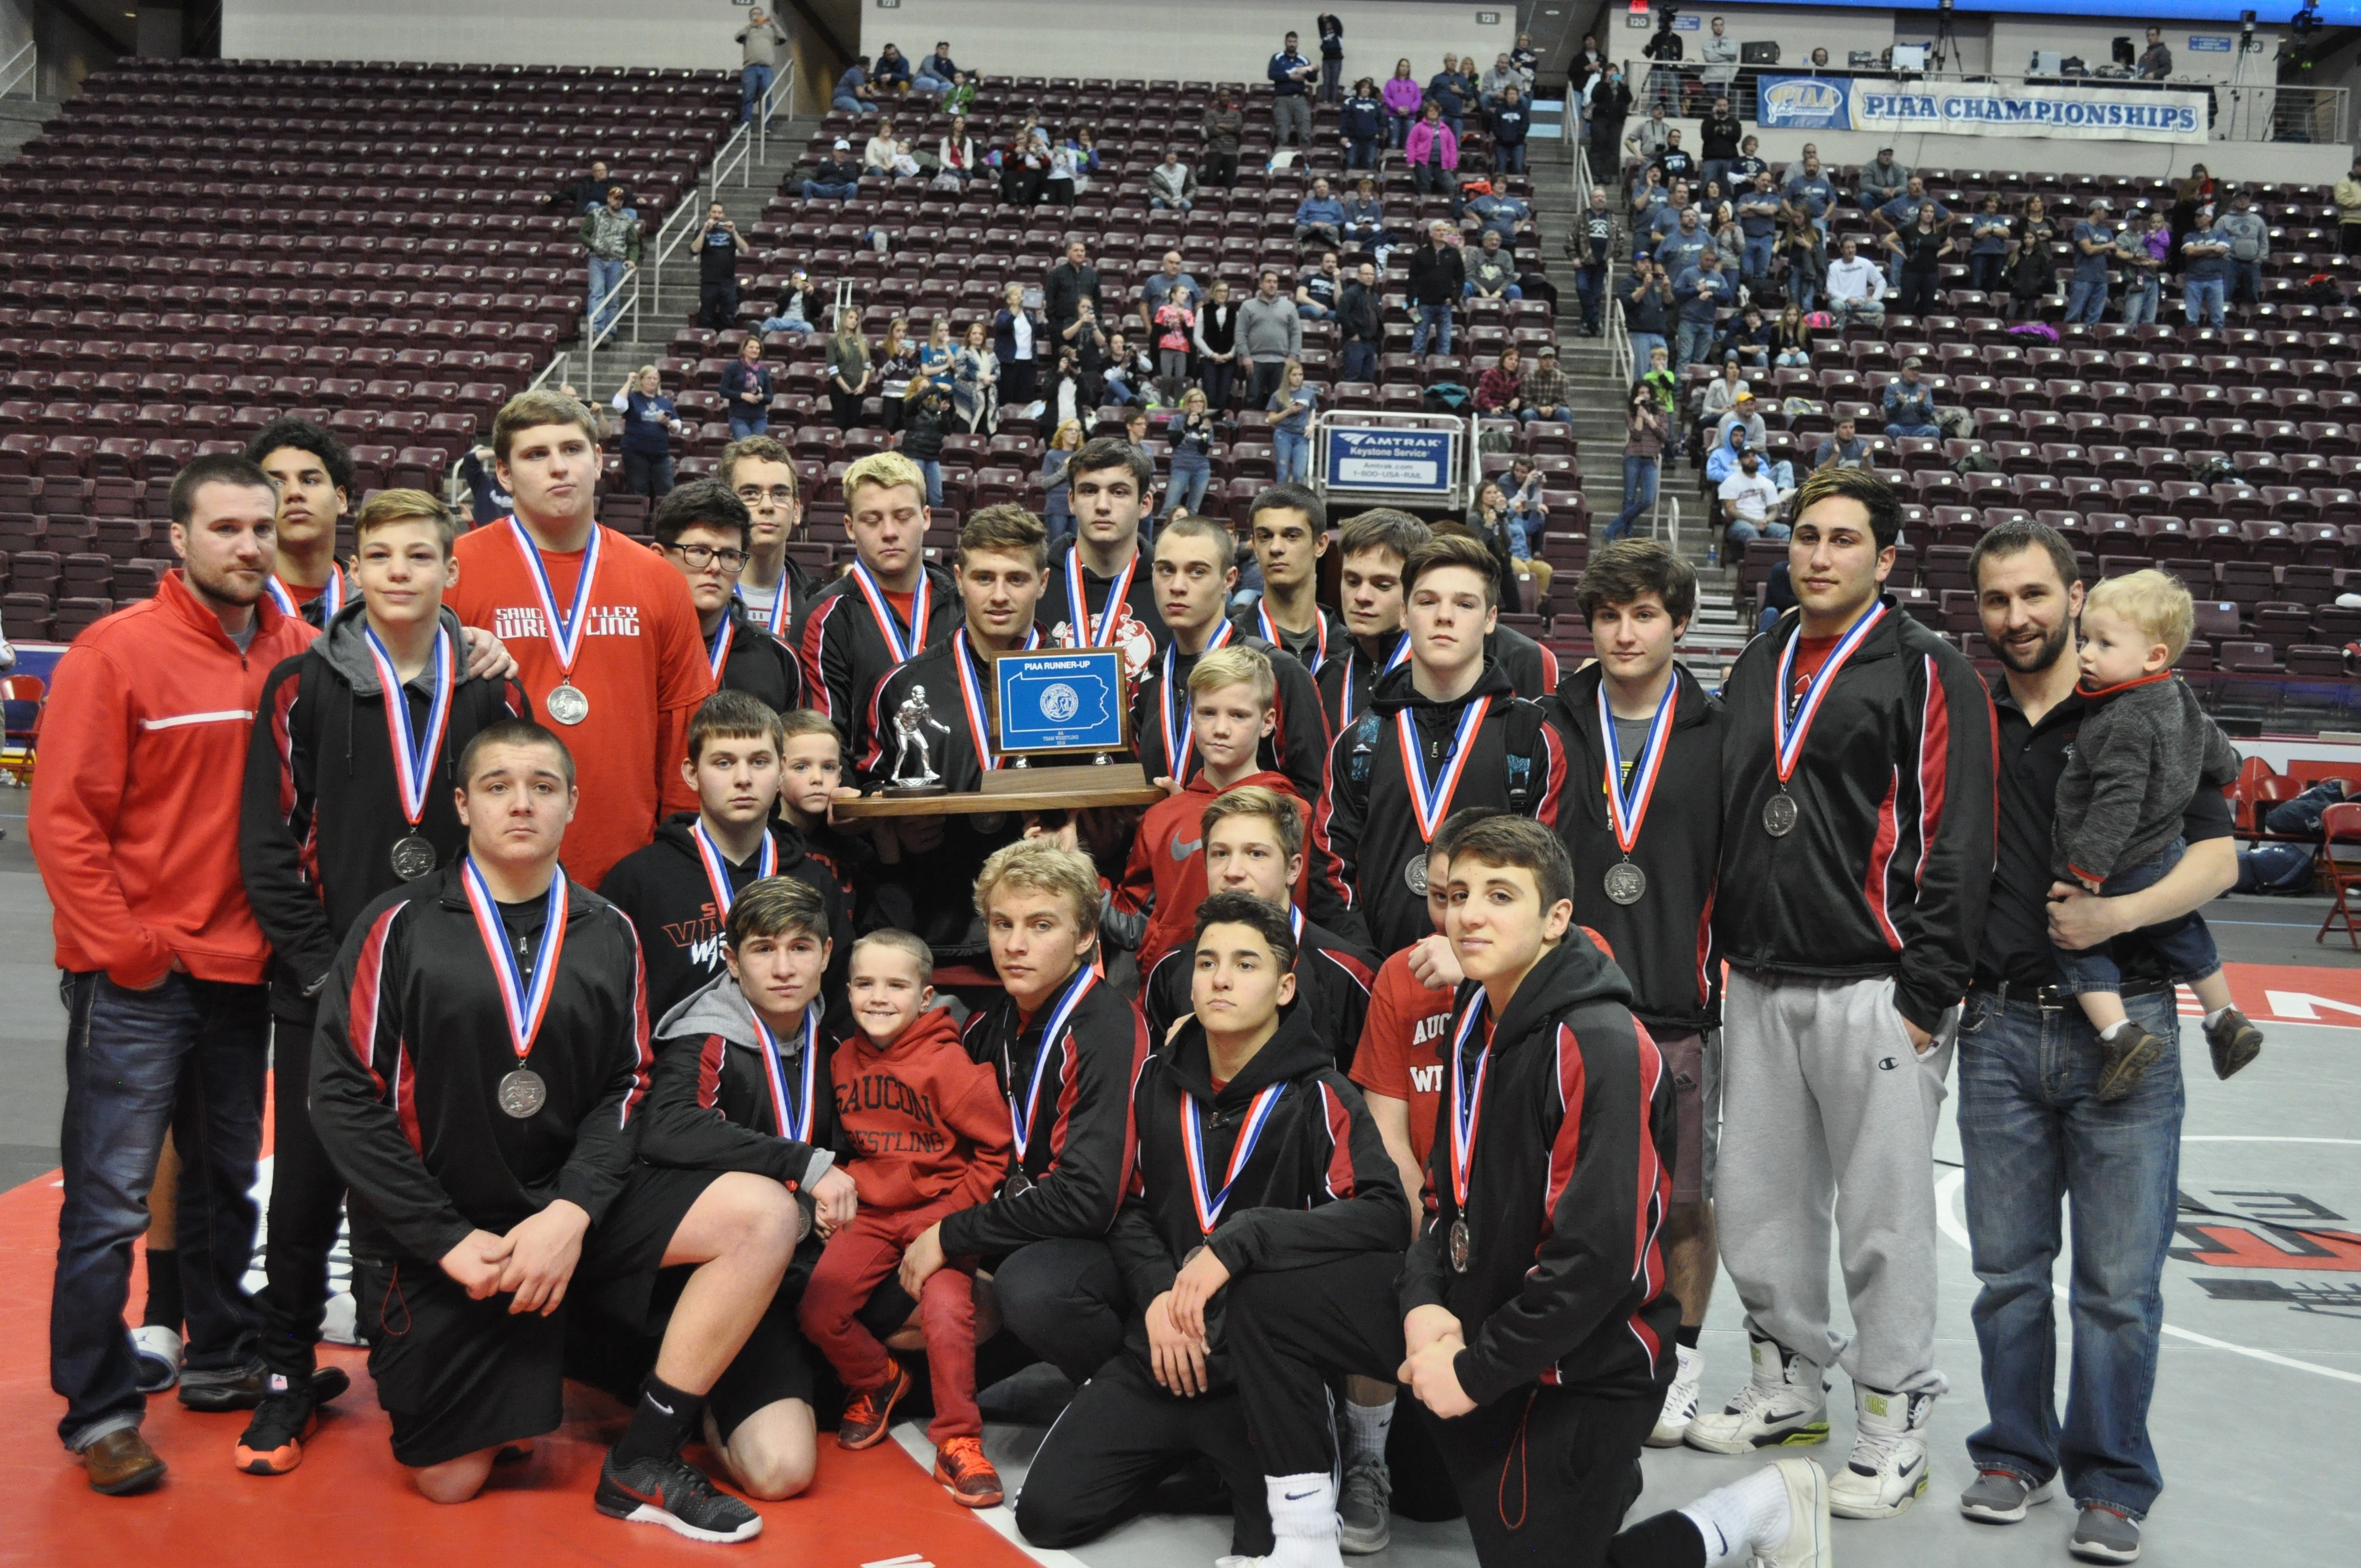 After a fantastic journey the Panthers were the 2016 PIAA State Championship Runner-ups